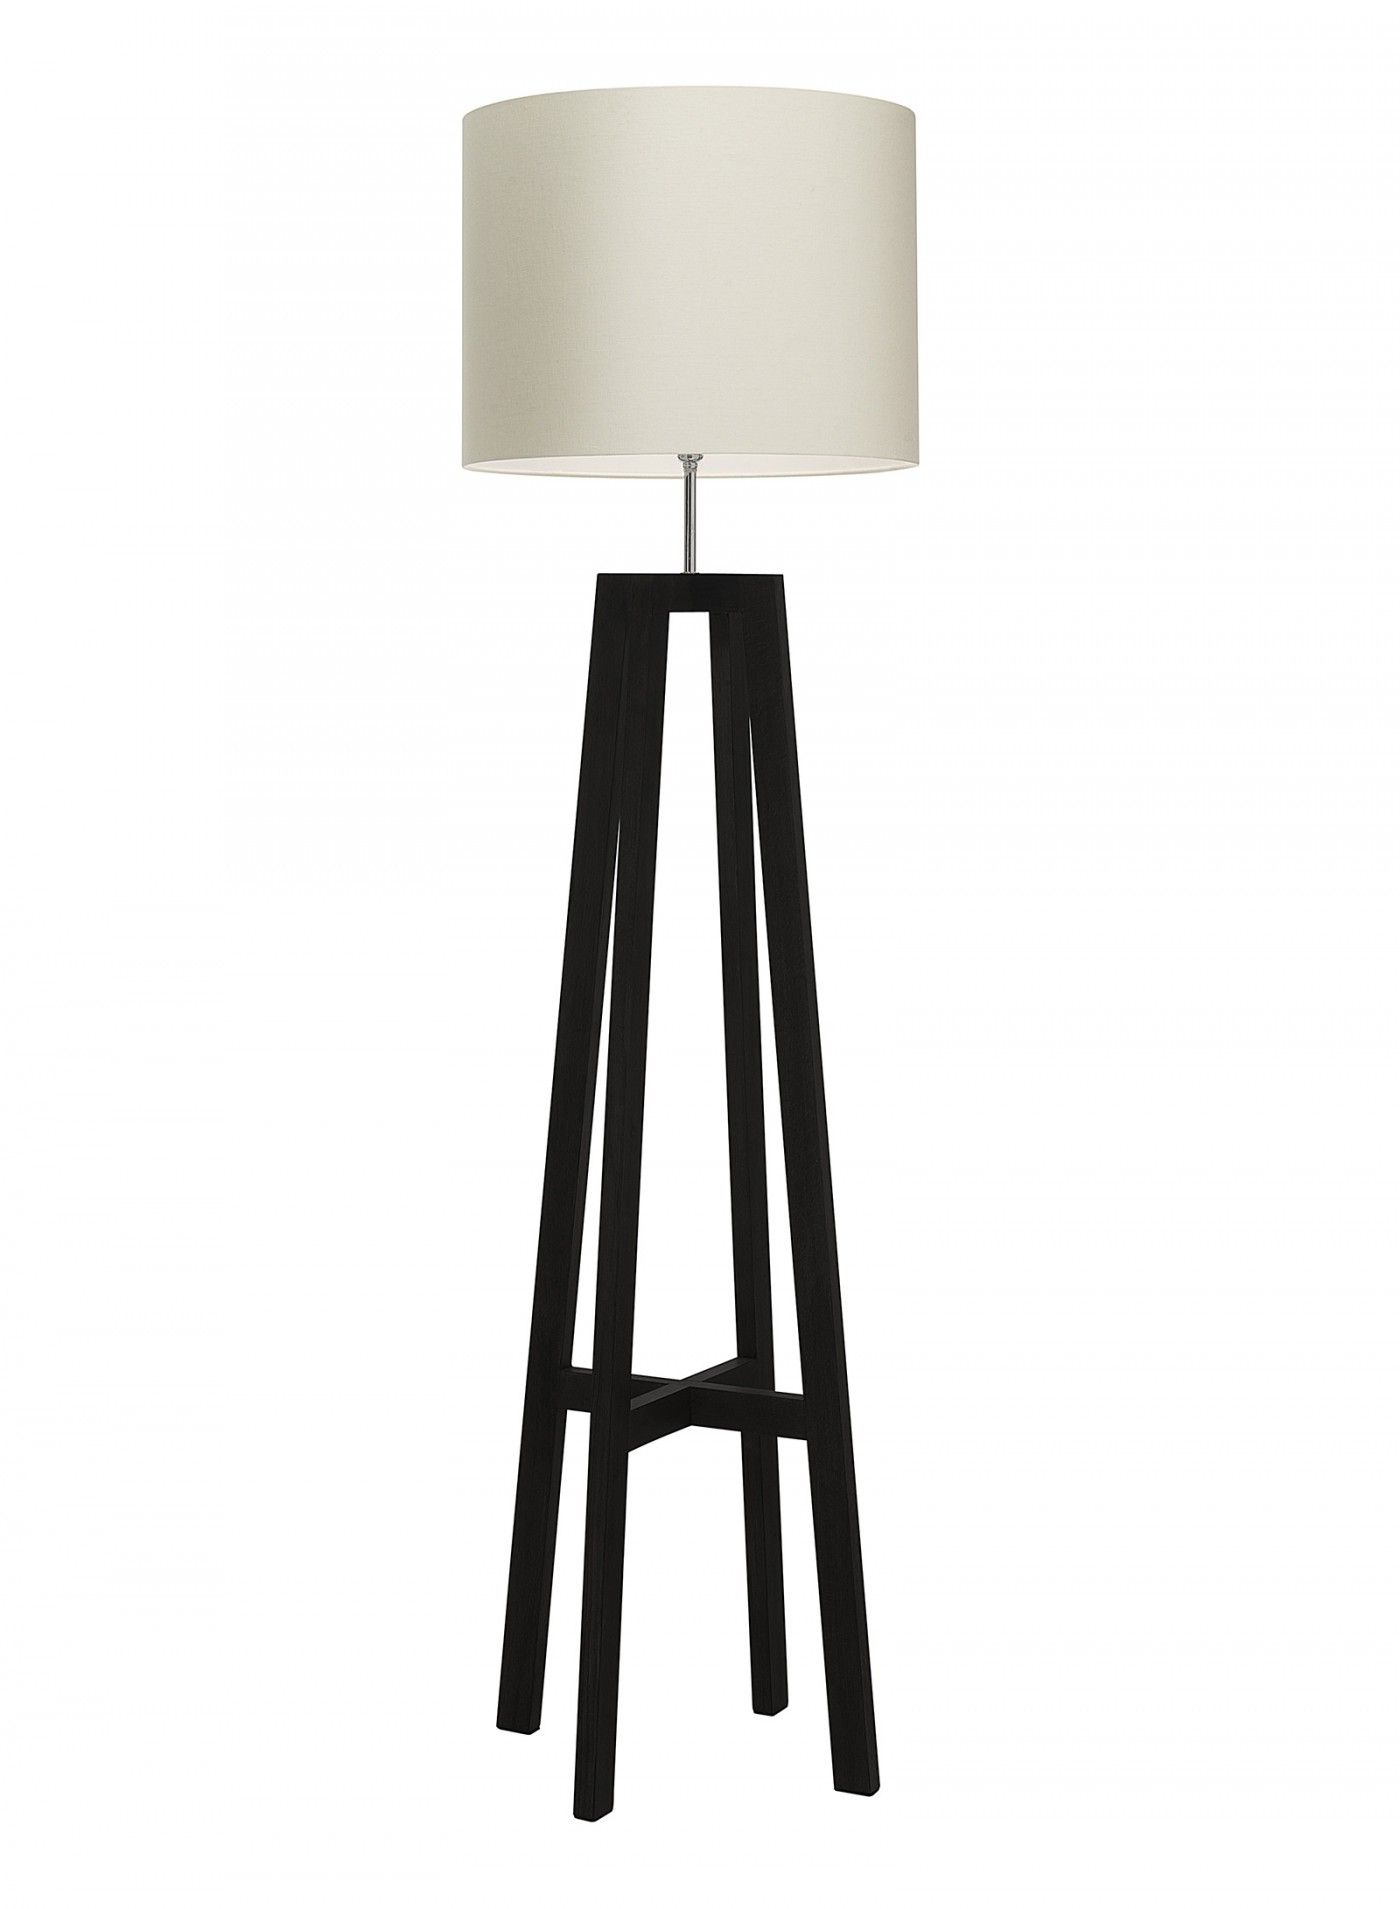 Tripod Wenge Floor Lamp Hand finished in Wenge and Antique Oak